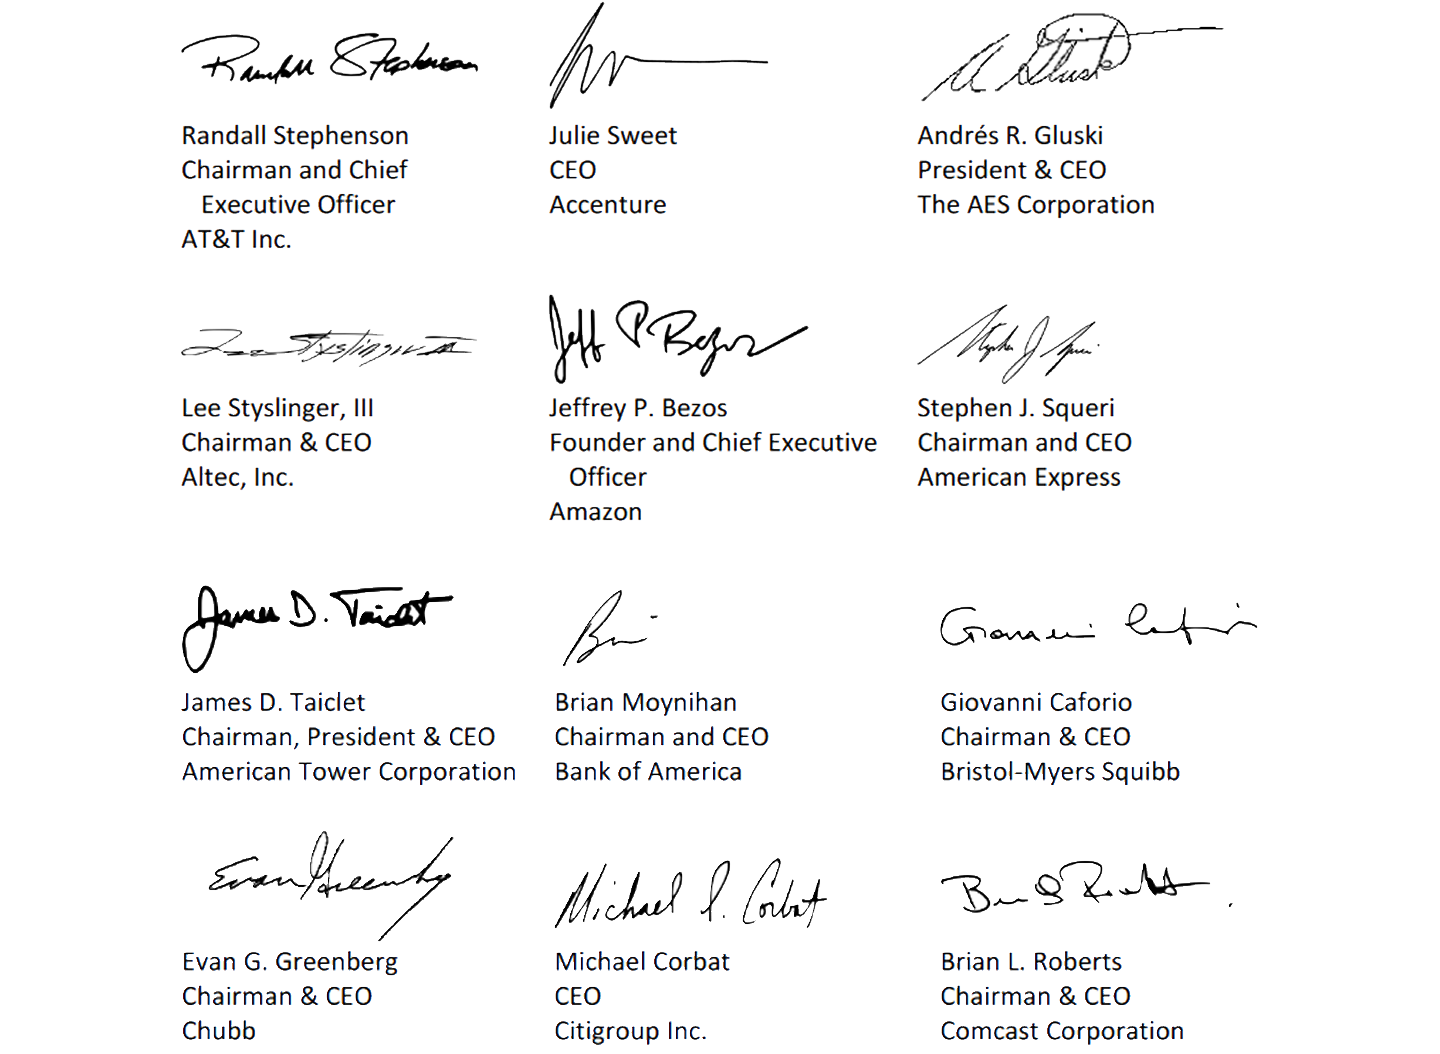 CEOs who signed the open letter include some of the world's largest tech companies